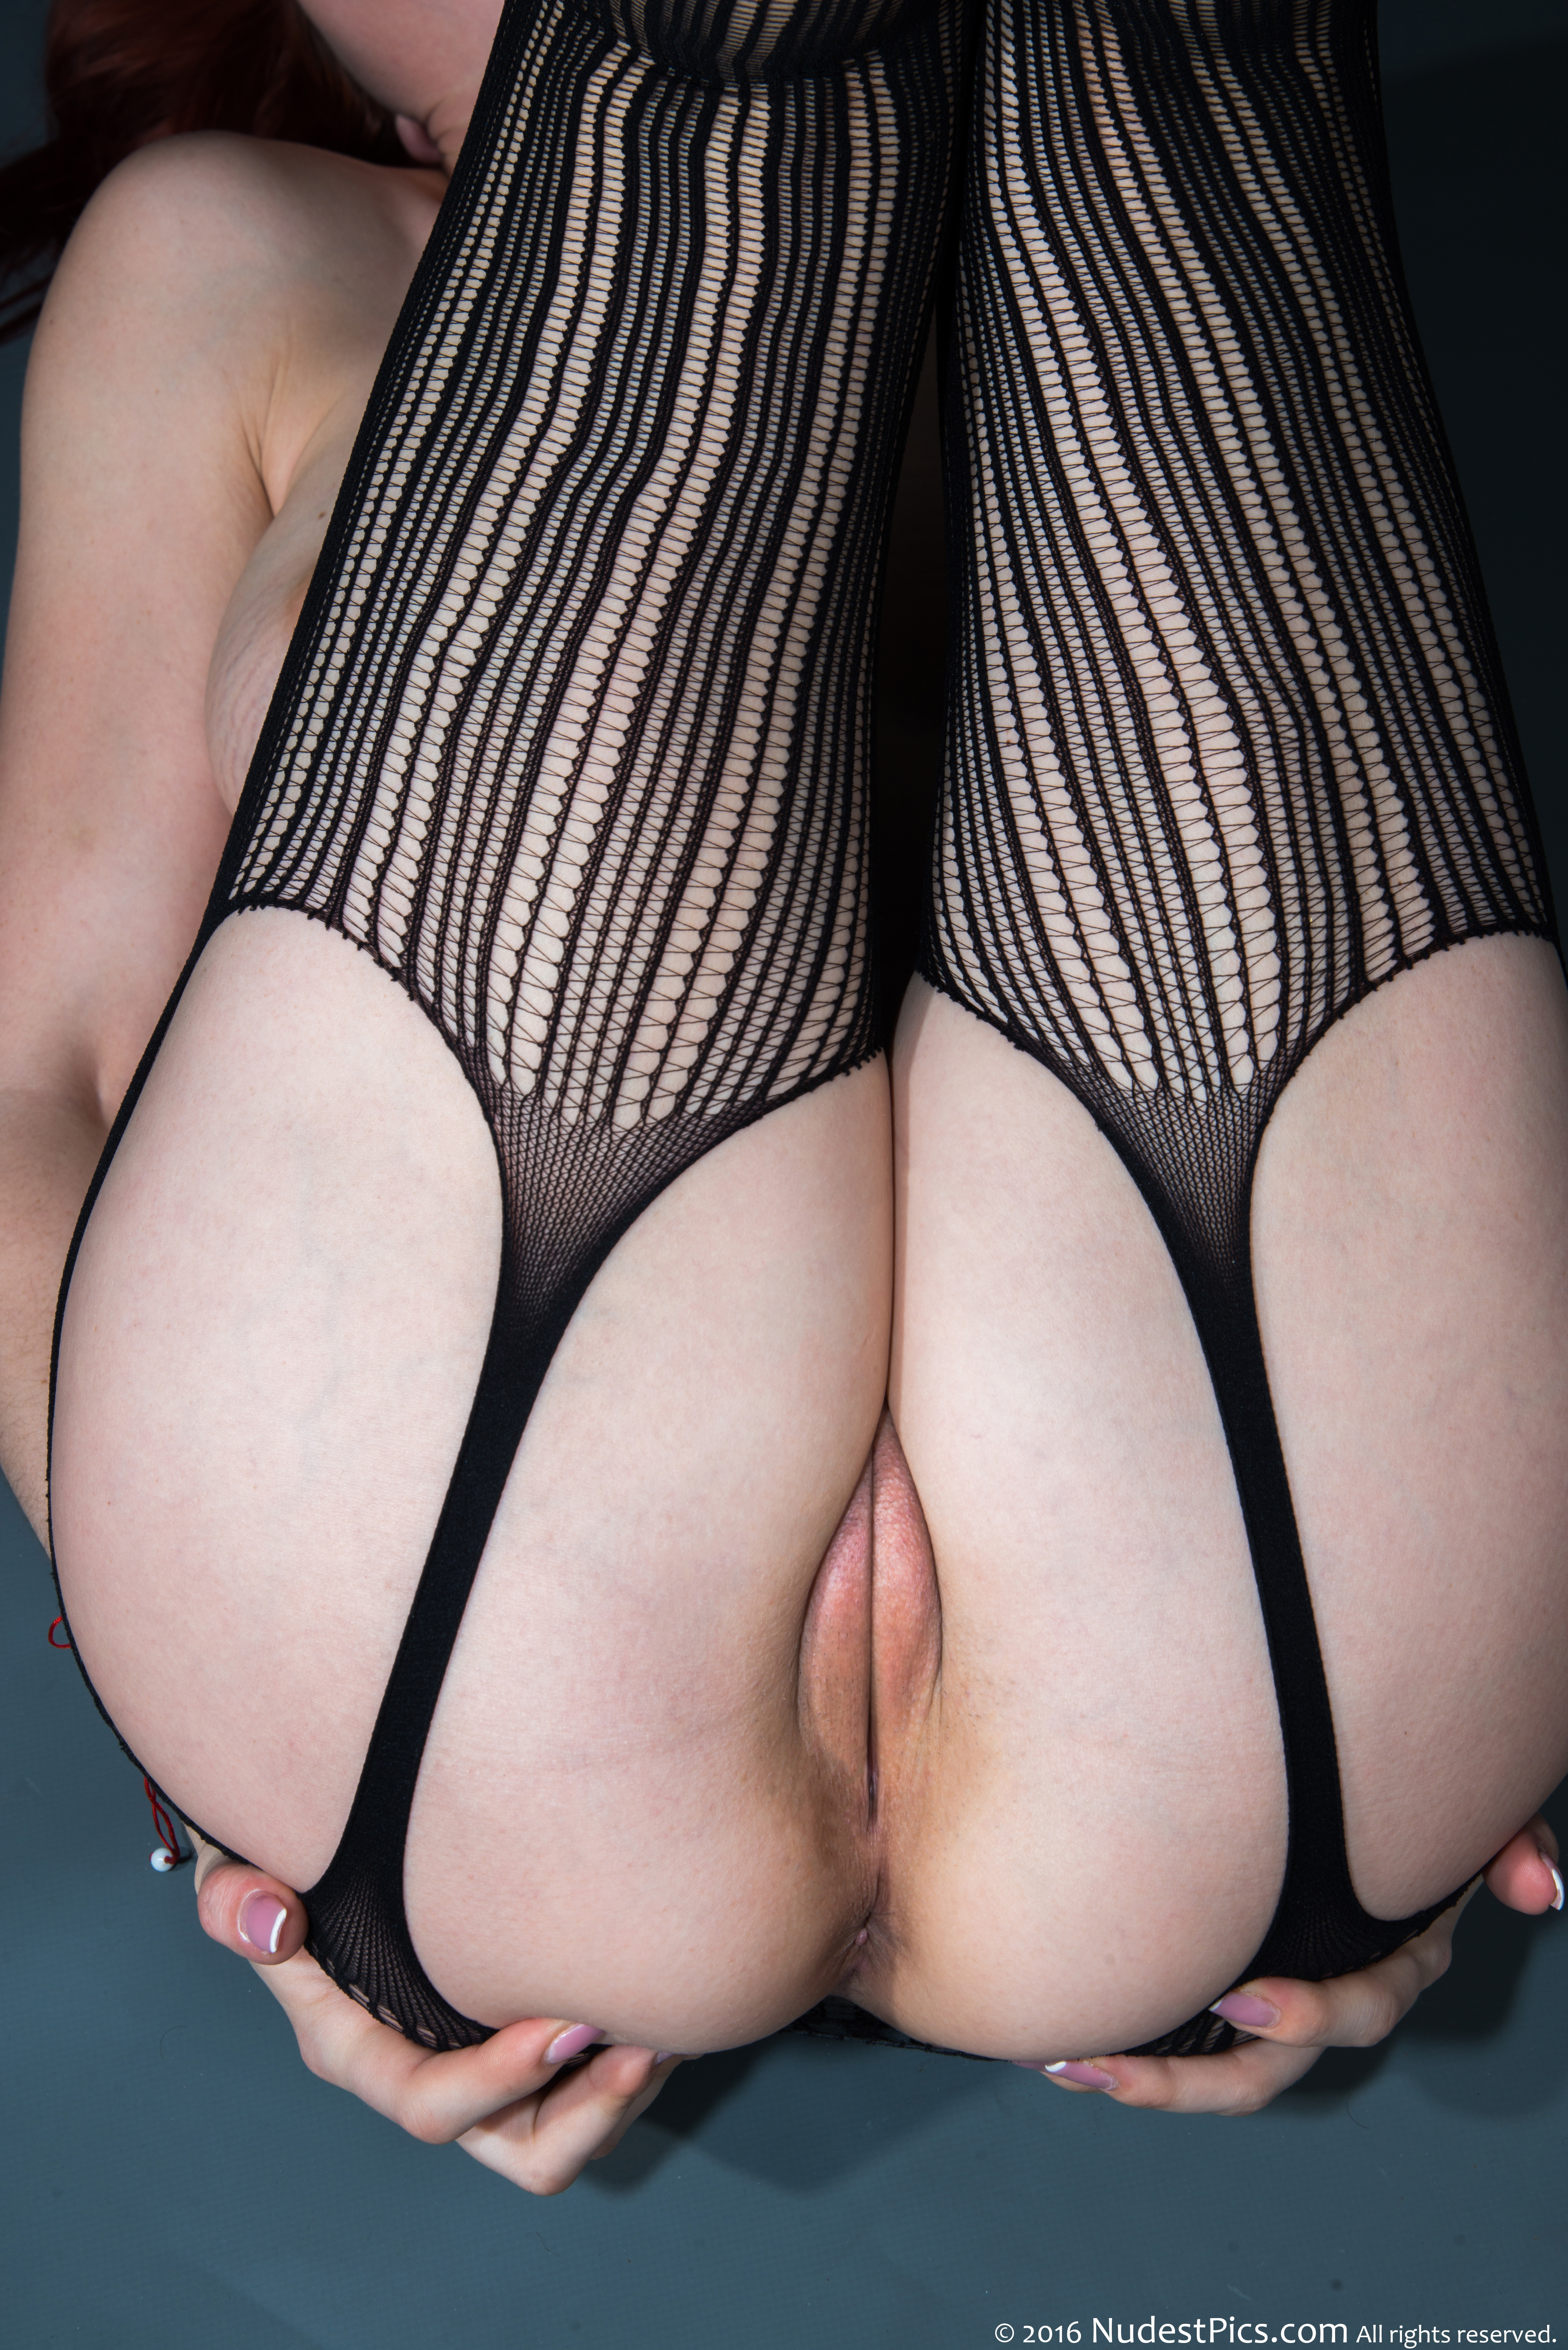 Legs Up Shaved Pussy Provocative Stockings